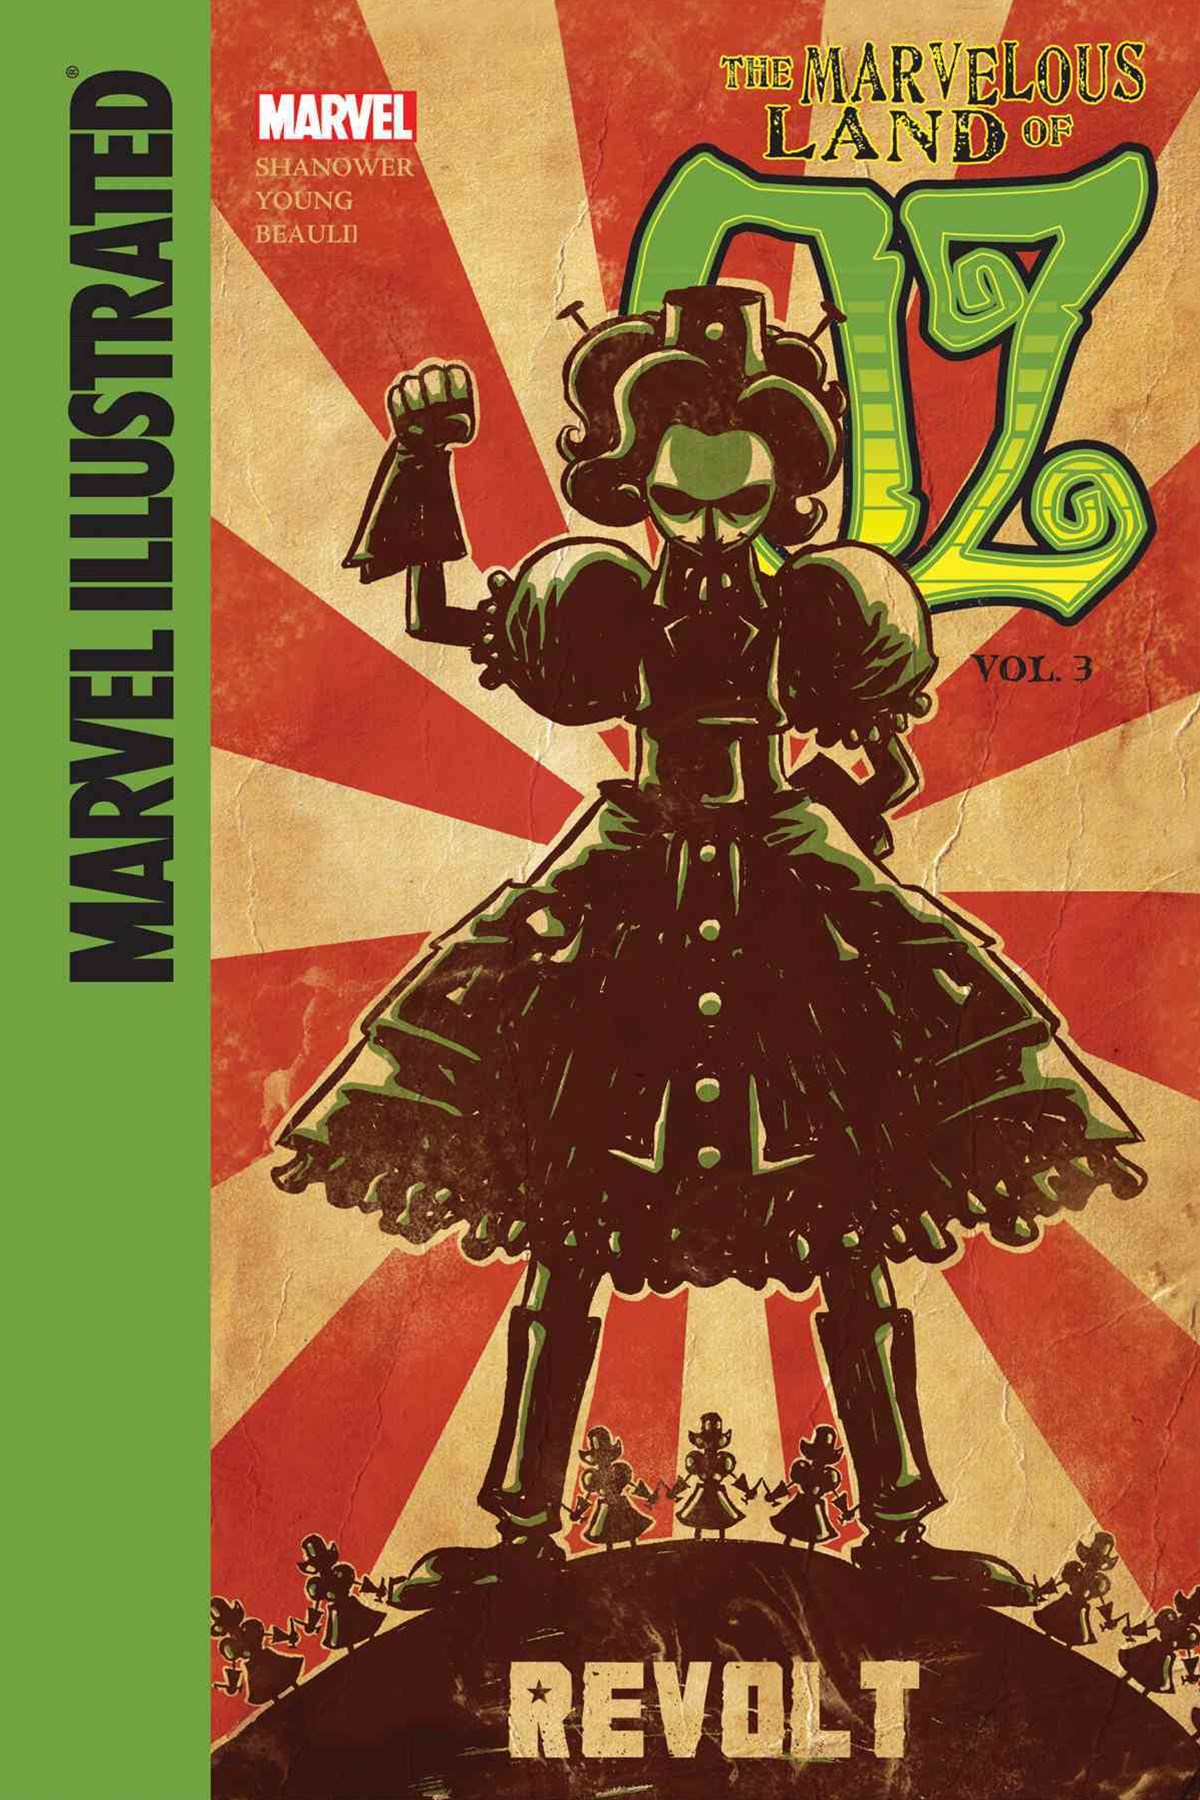 Marvelous Land of Oz: Vol. 3